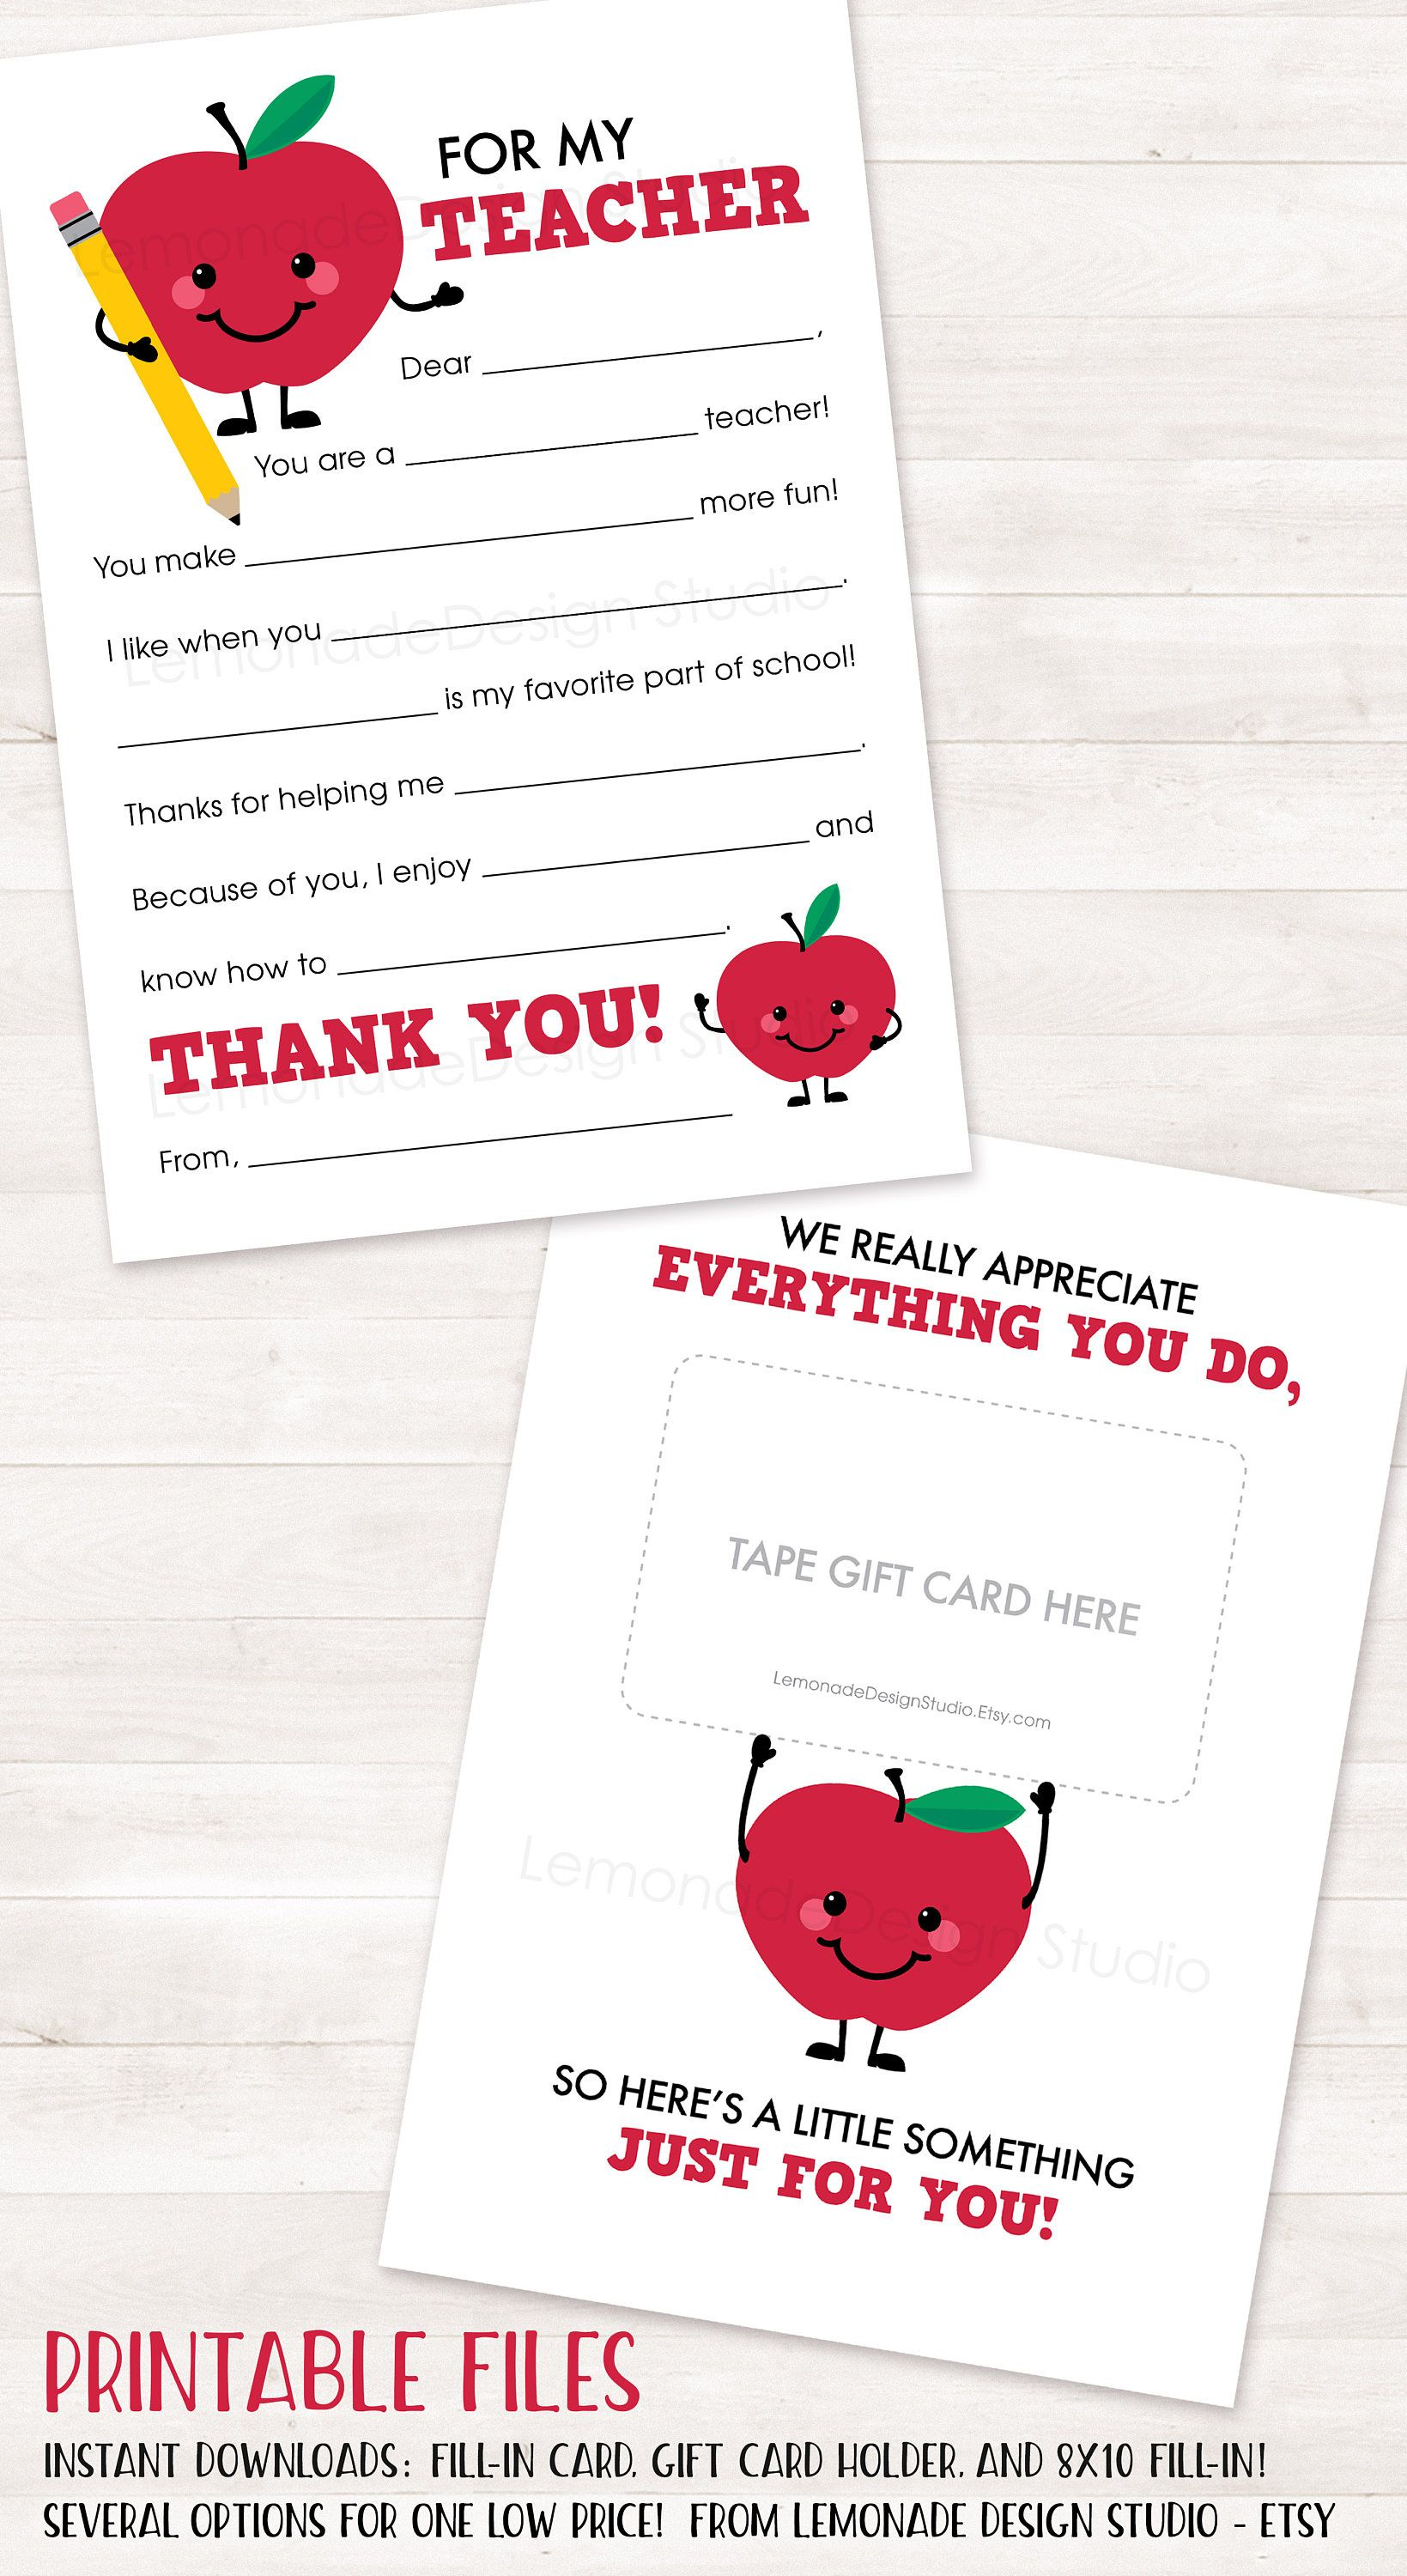 picture about Printable Teacher Appreciation Card called Conclude of 12 months Trainer Reward Card Holder Trainer Appreciation